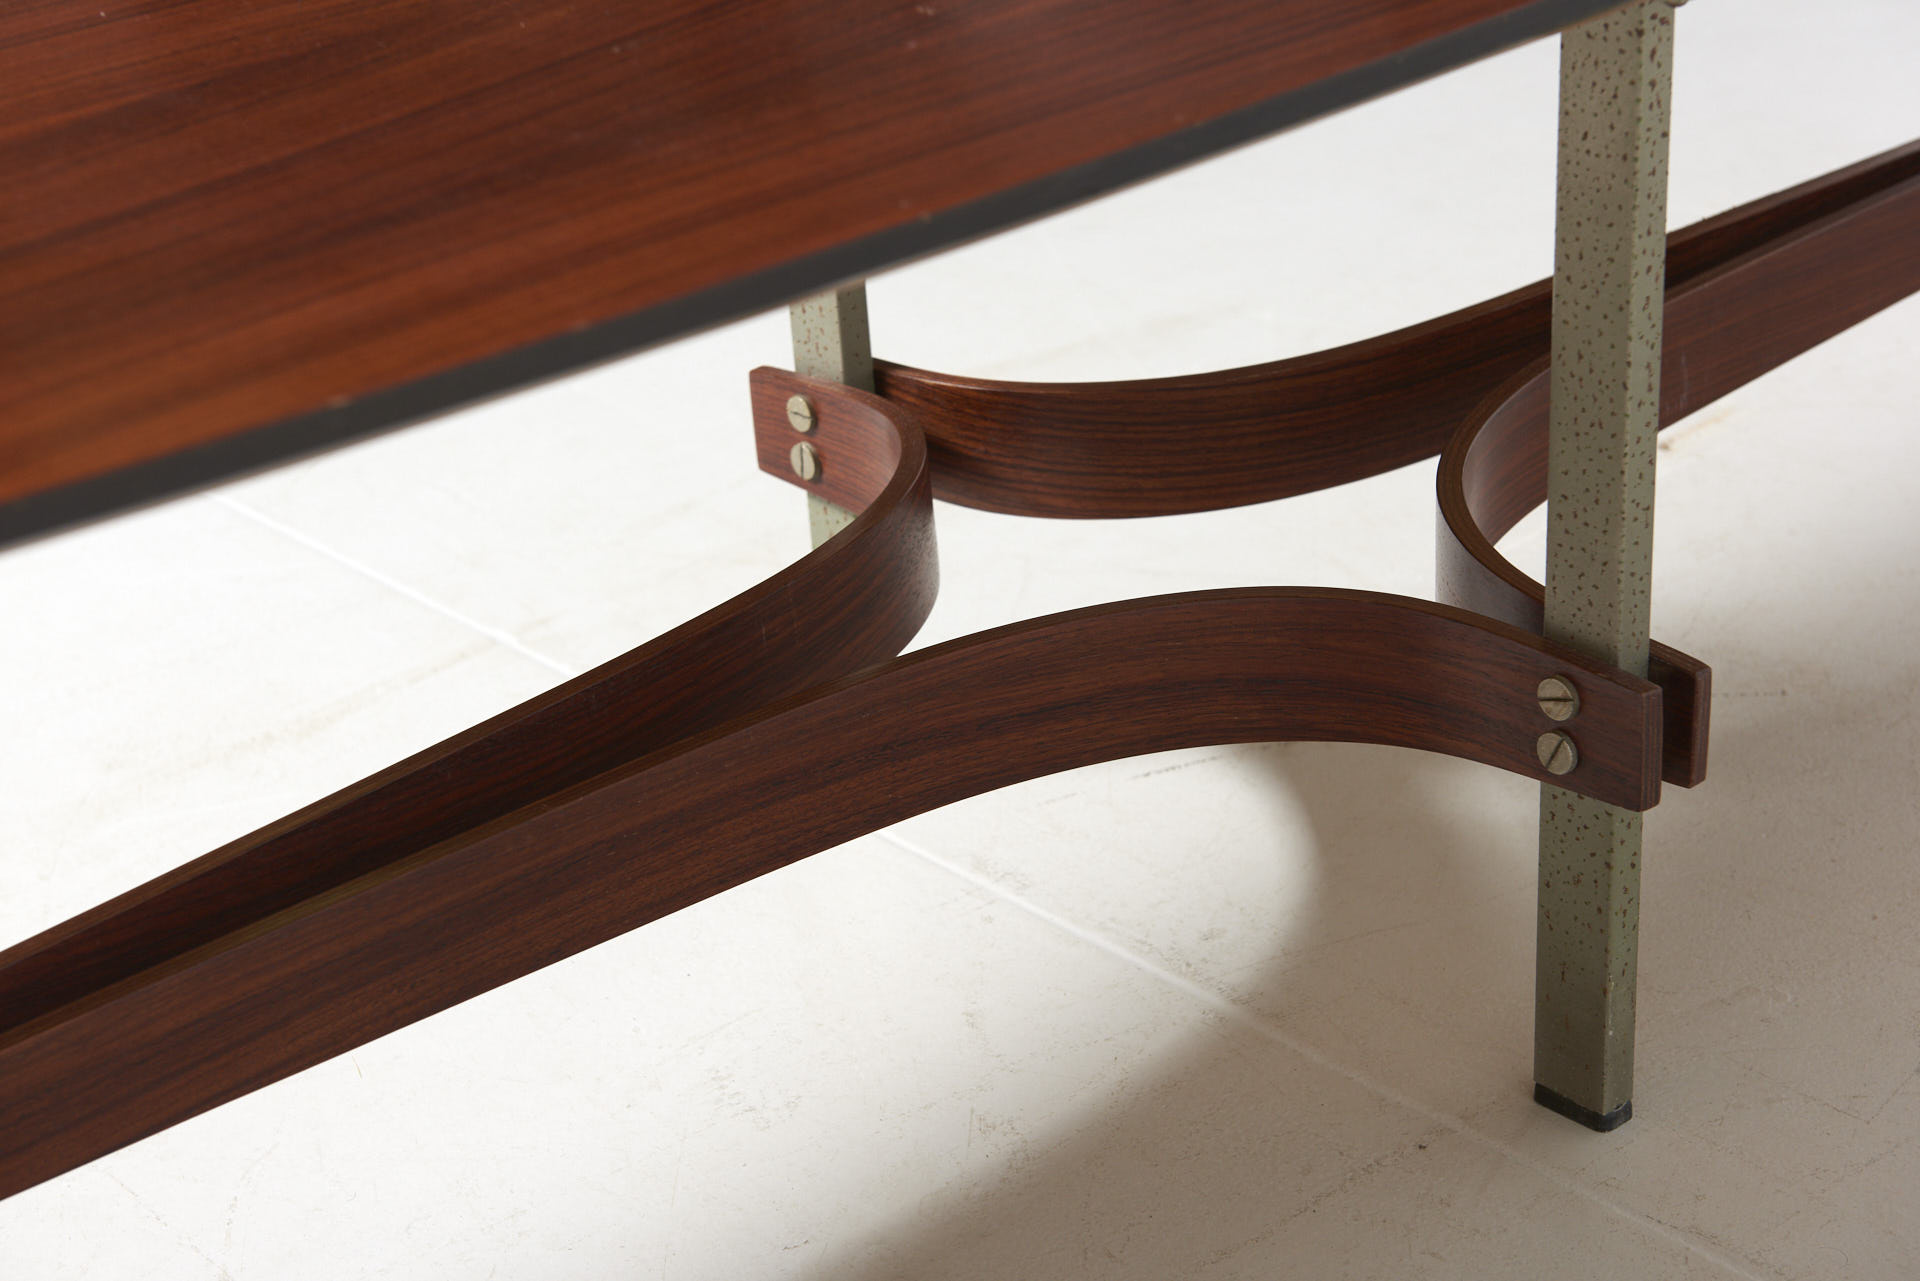 modestfurniture-vintage-2219-low-table-ellips-rosewood04